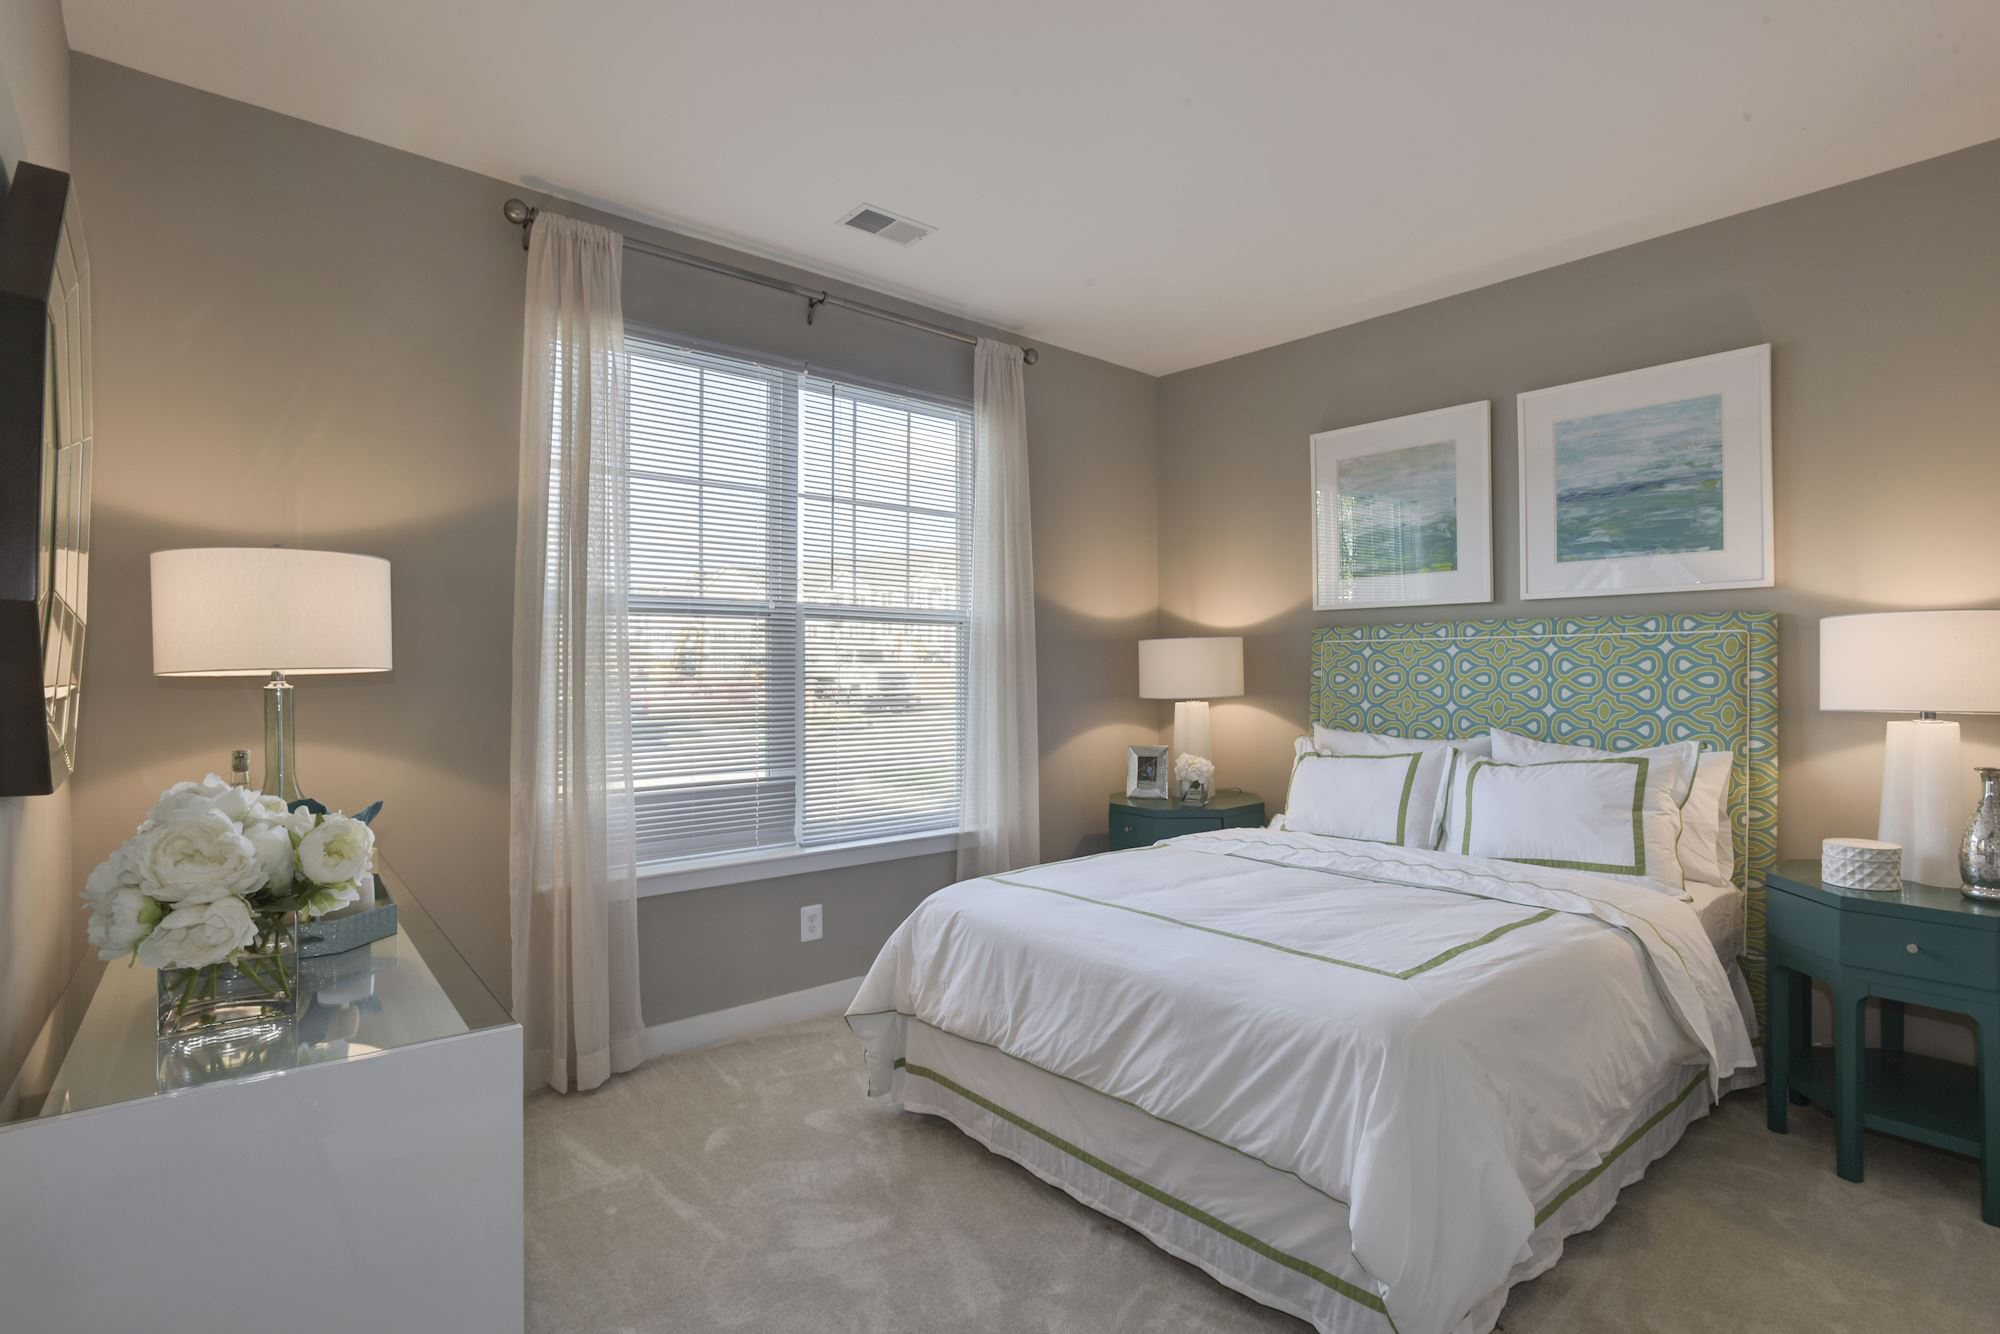 Avanti Luxury Apartments in Bel Air, MD - Bedroom